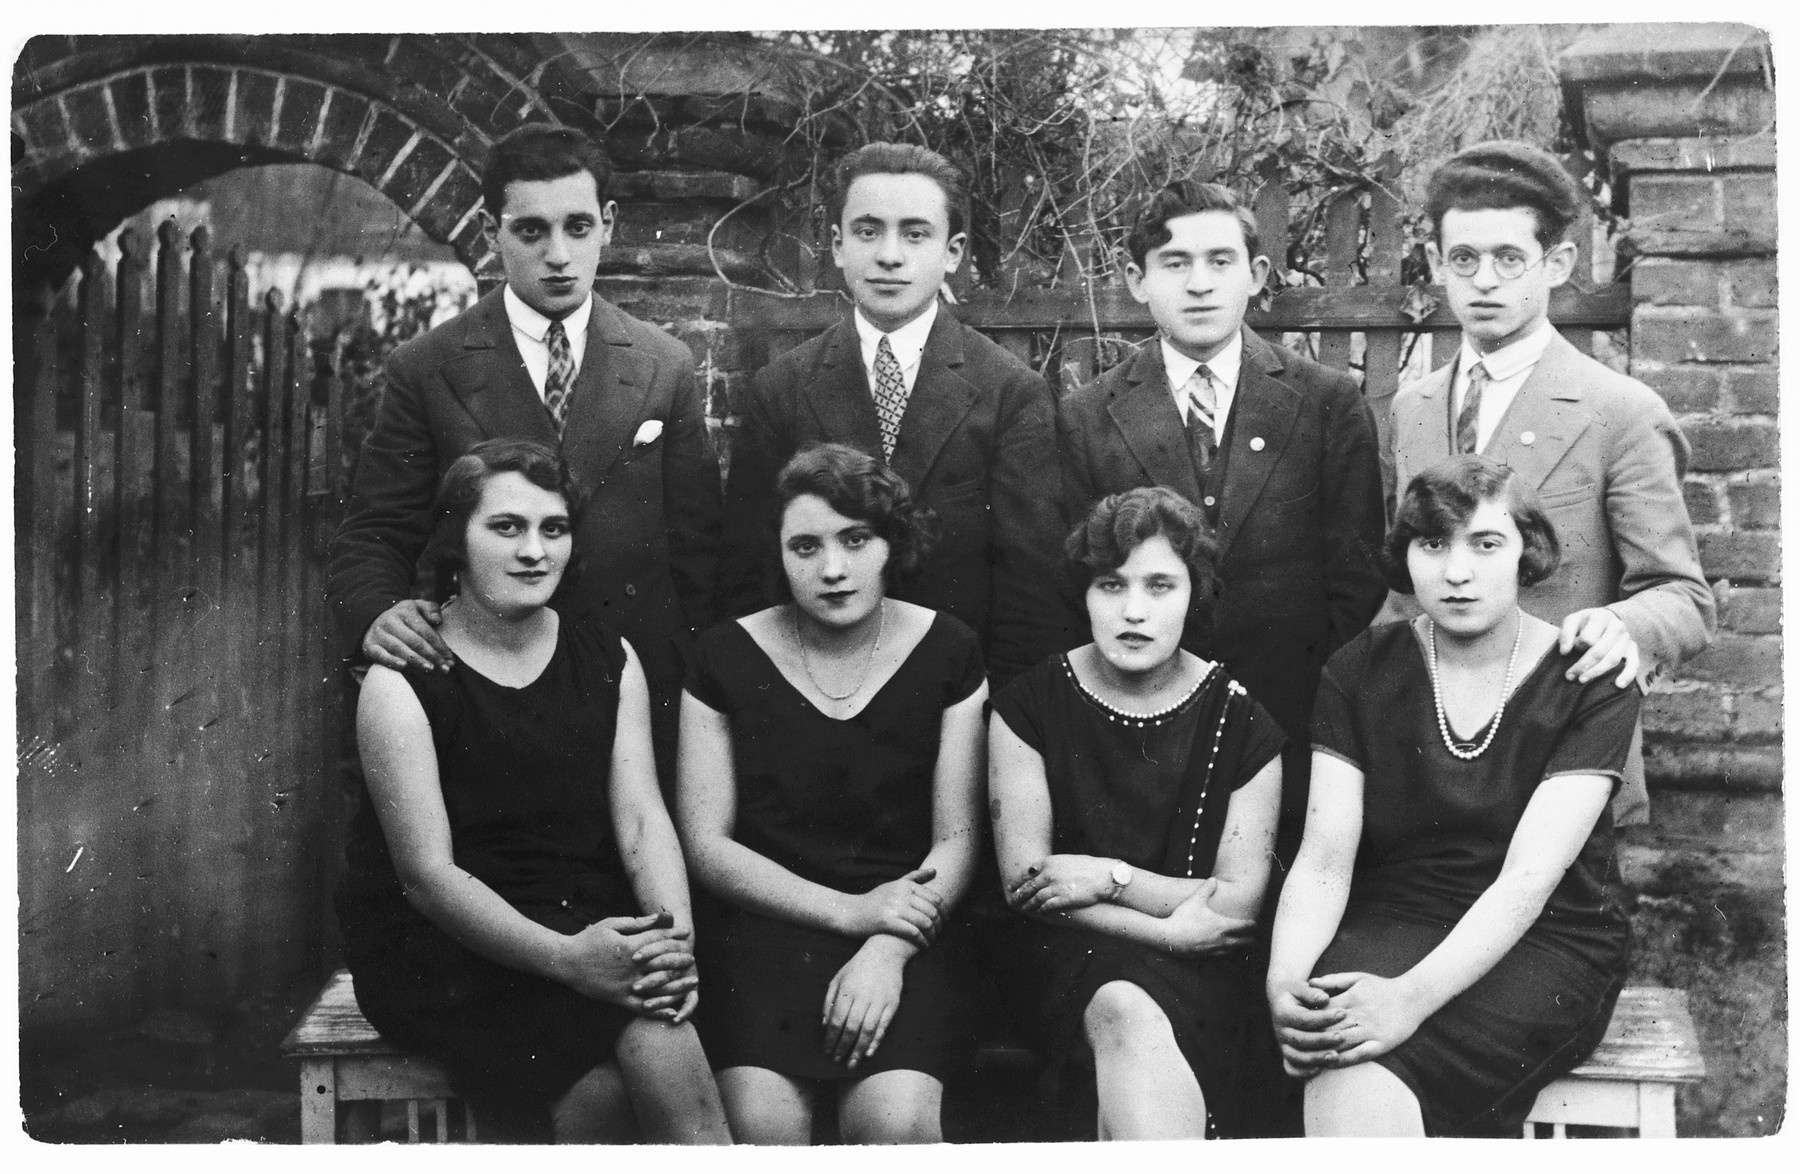 Group portrait of four young couples in prewar Zelow.